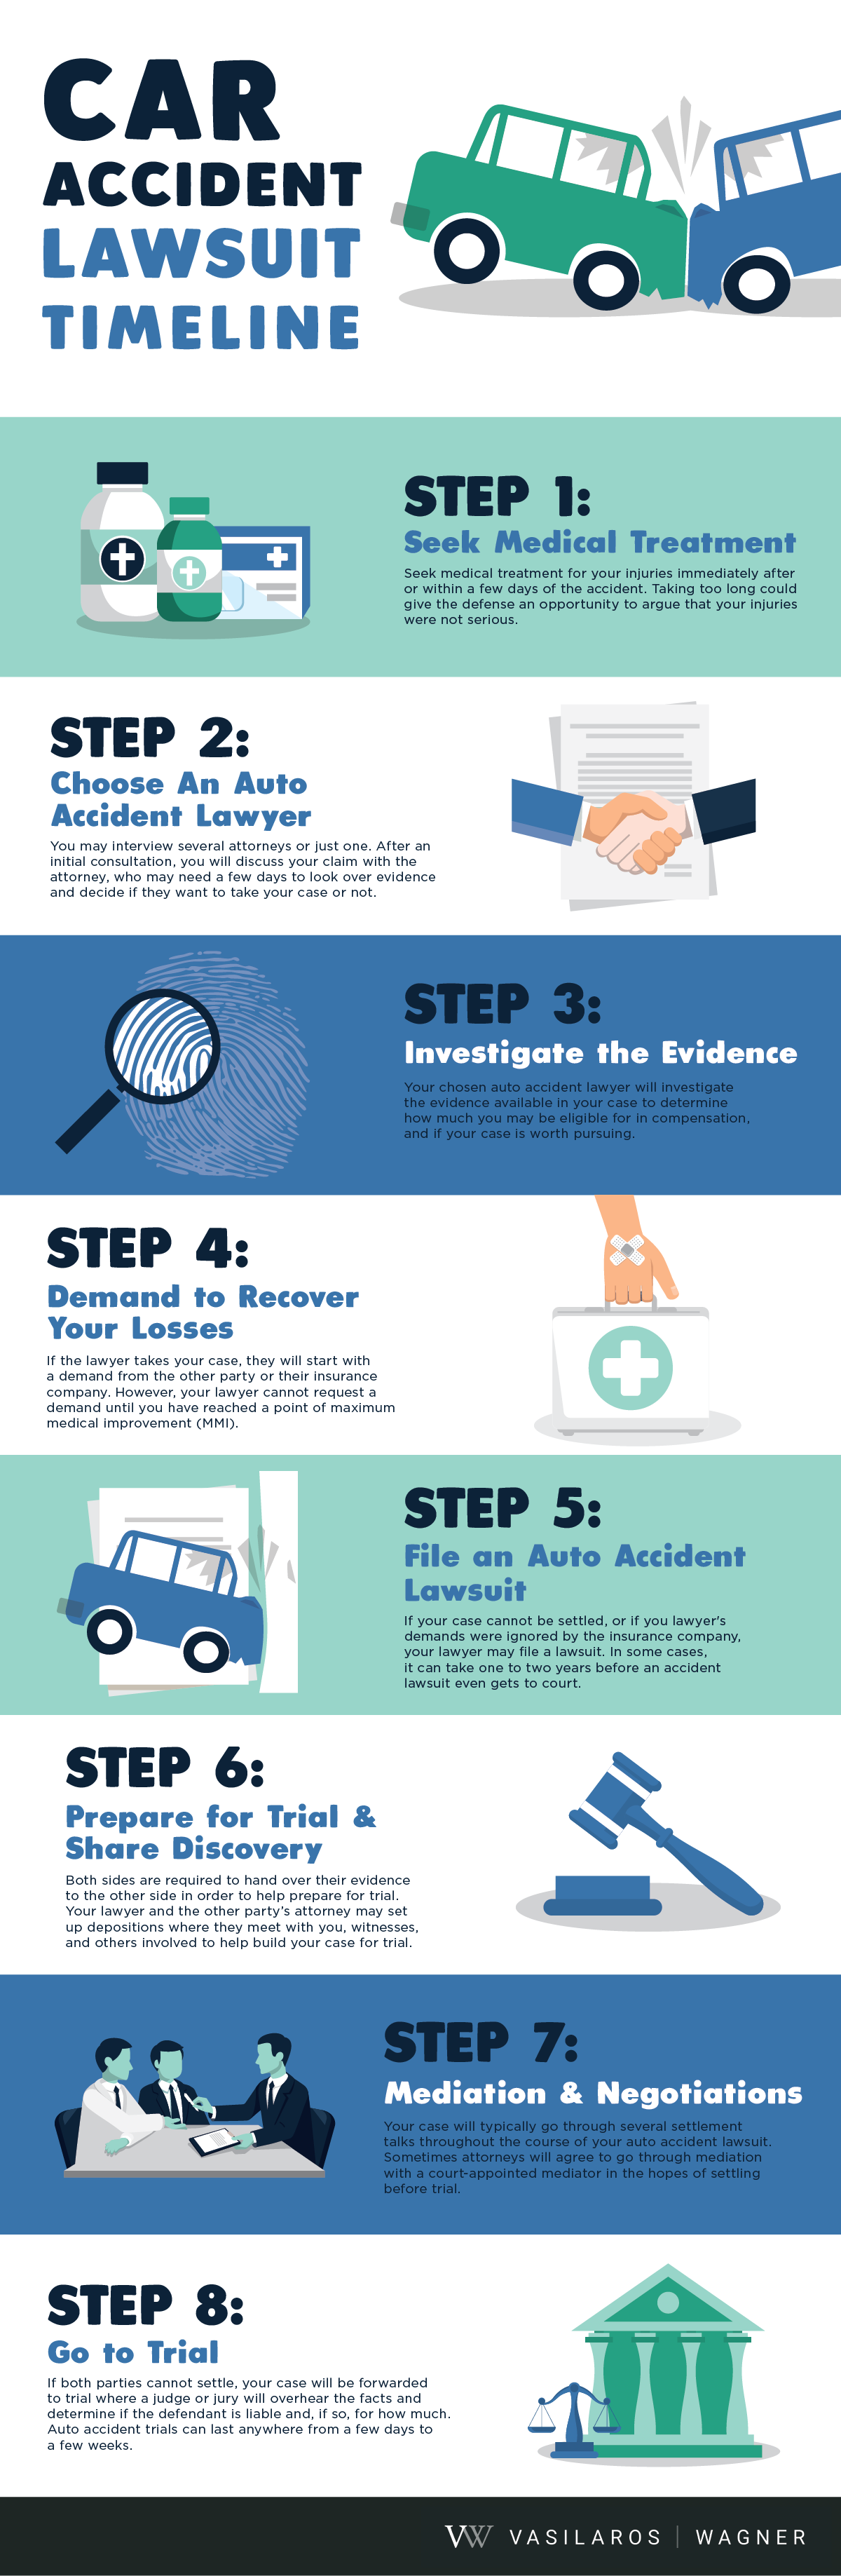 car accident lawsuit timeline infographic